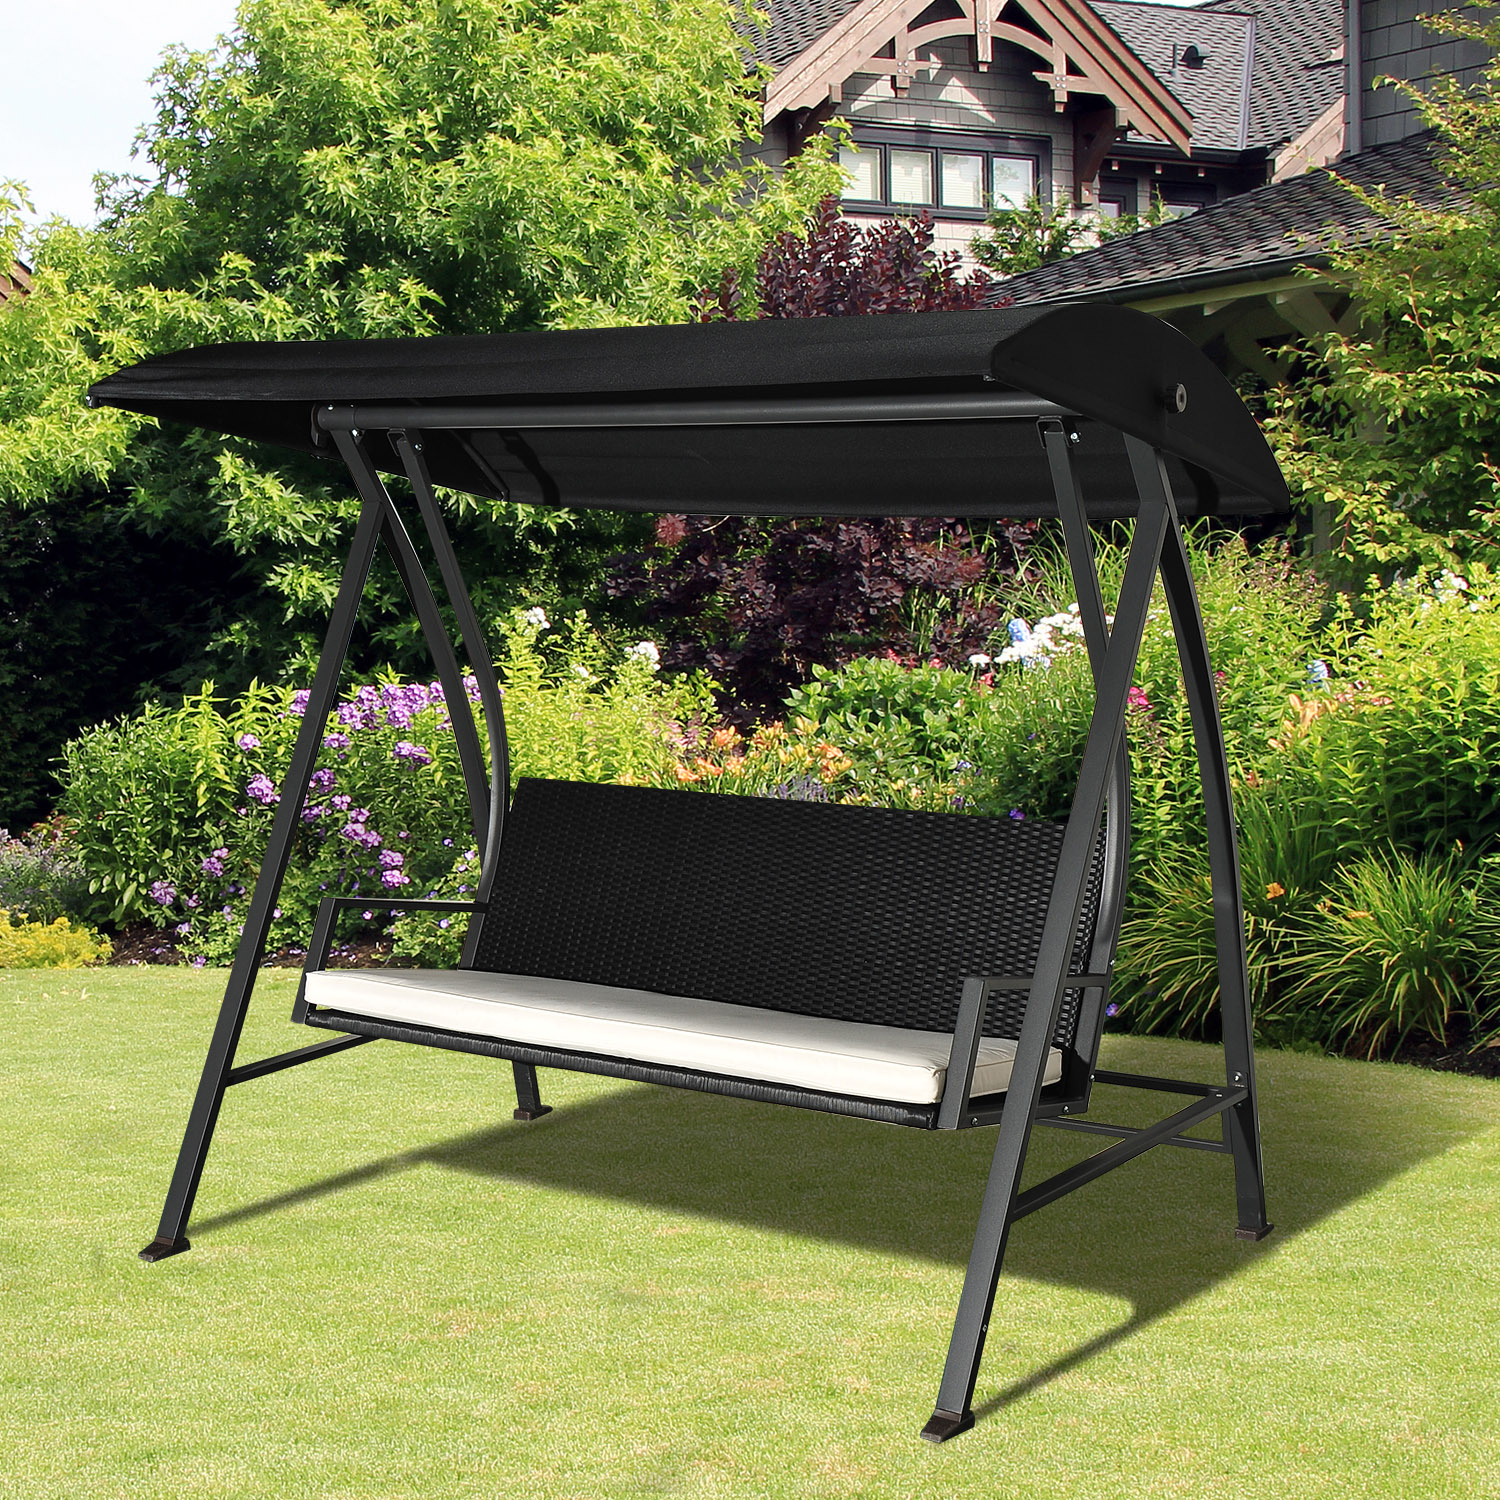 Details About Outsunny Outdoor Garden Rattan Swing Chair Swinging Hammock 3 Seater Bench For Rattan Garden Swing Chairs (View 19 of 25)